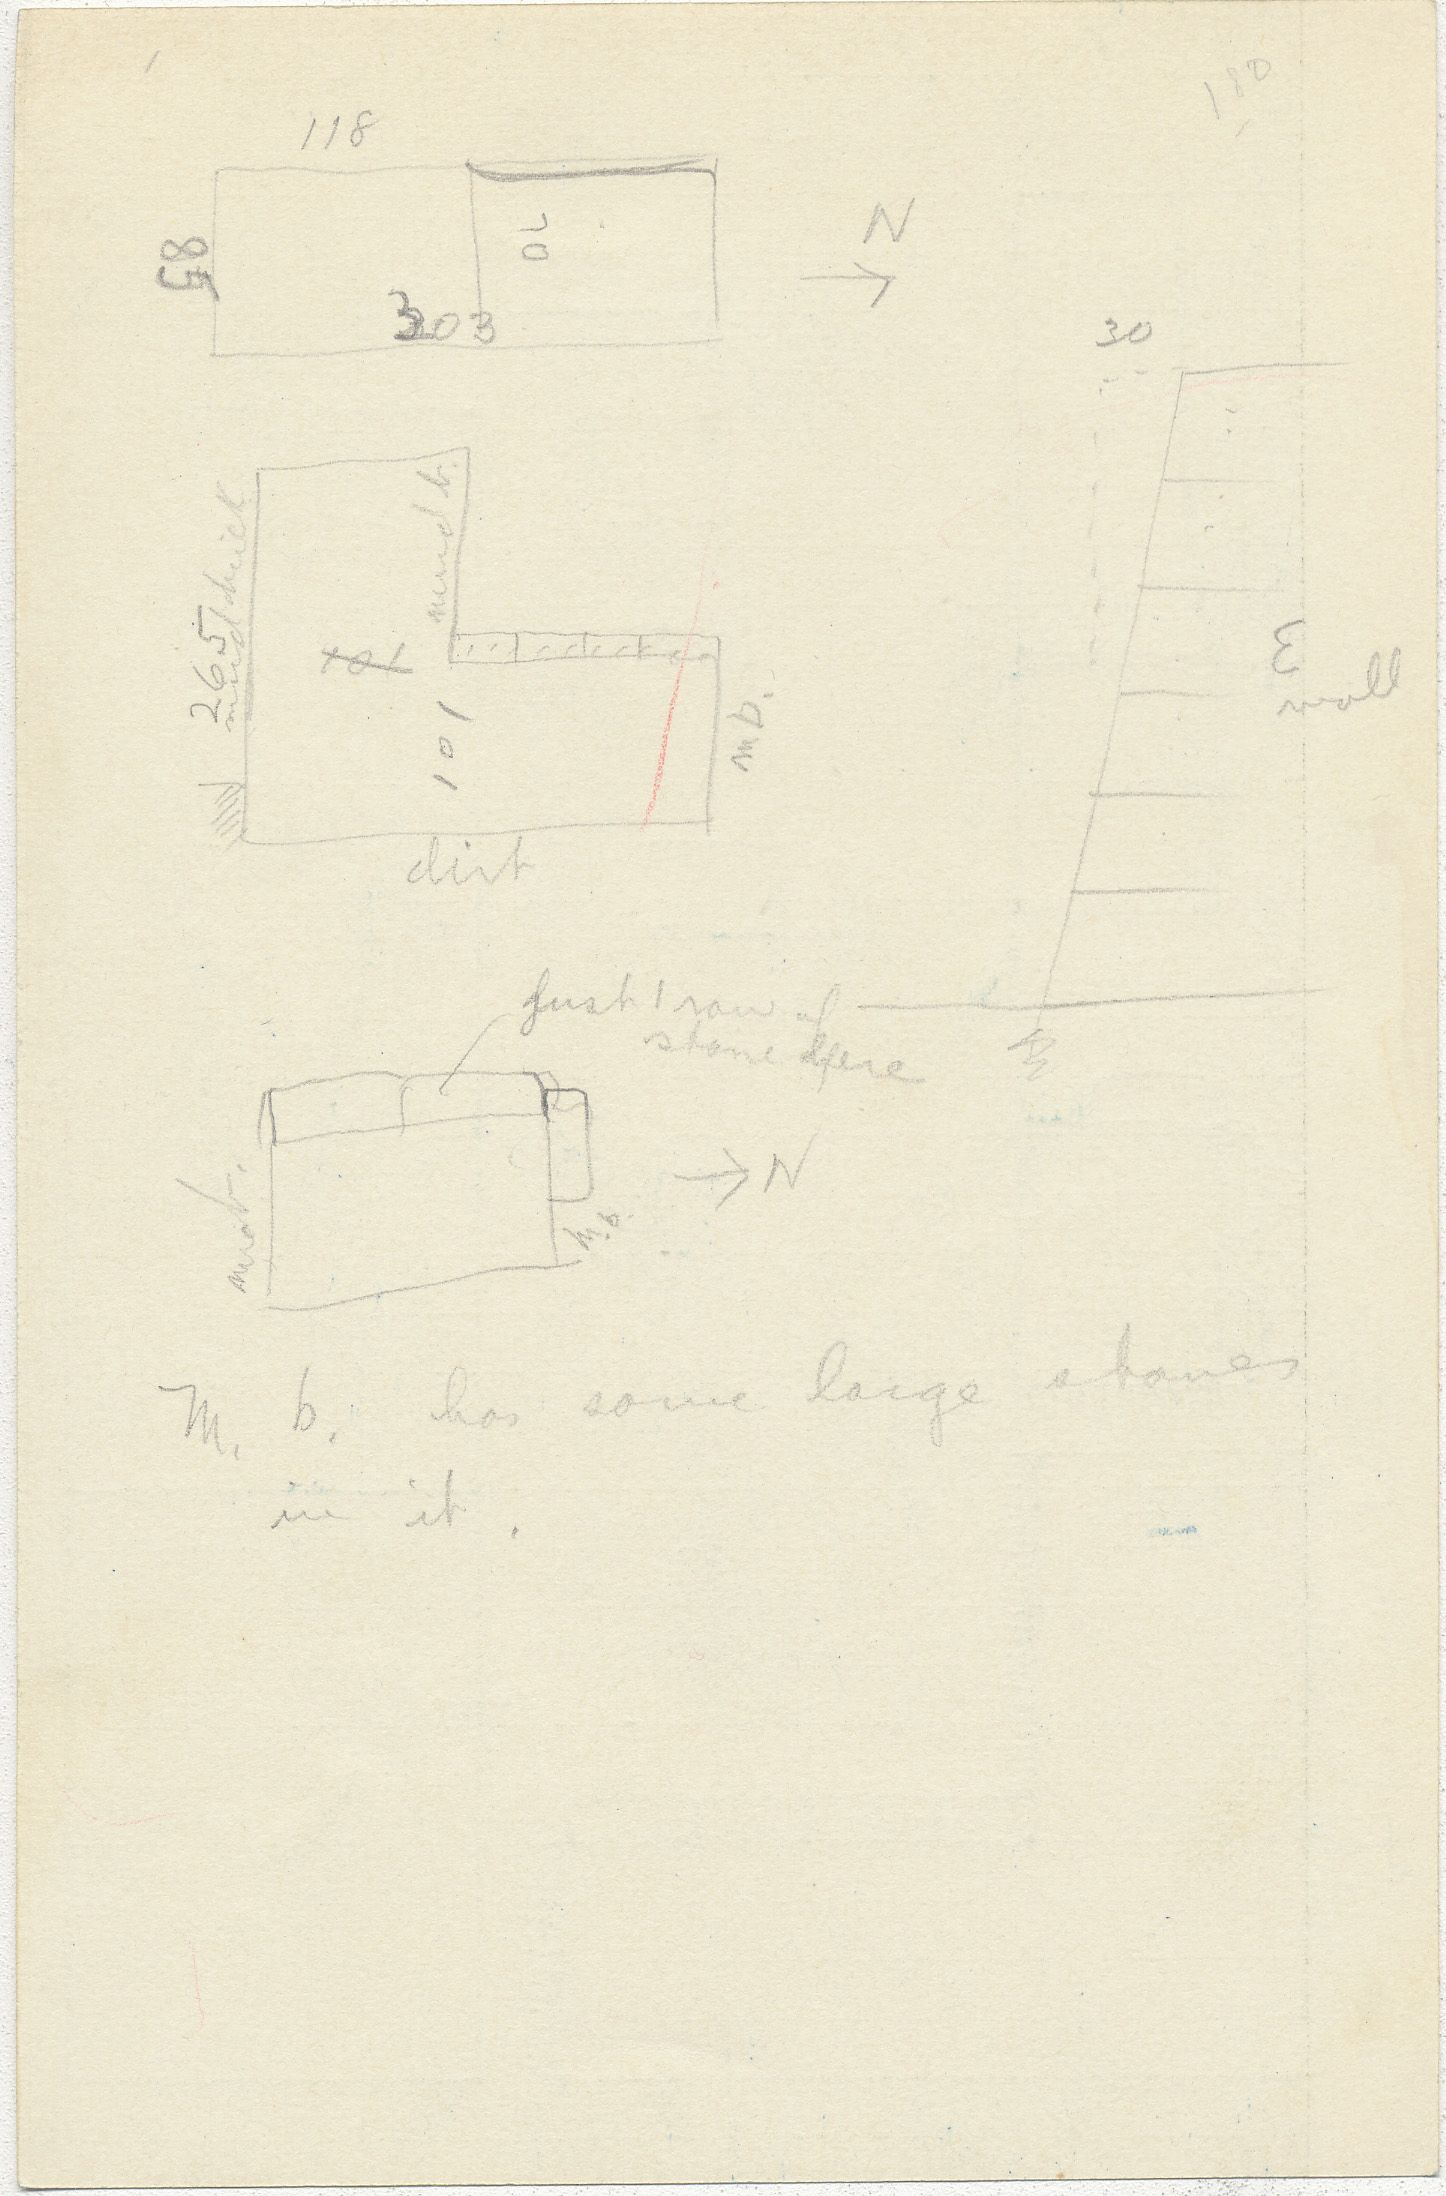 Maps and plans: G 2353, Shaft Y, notes